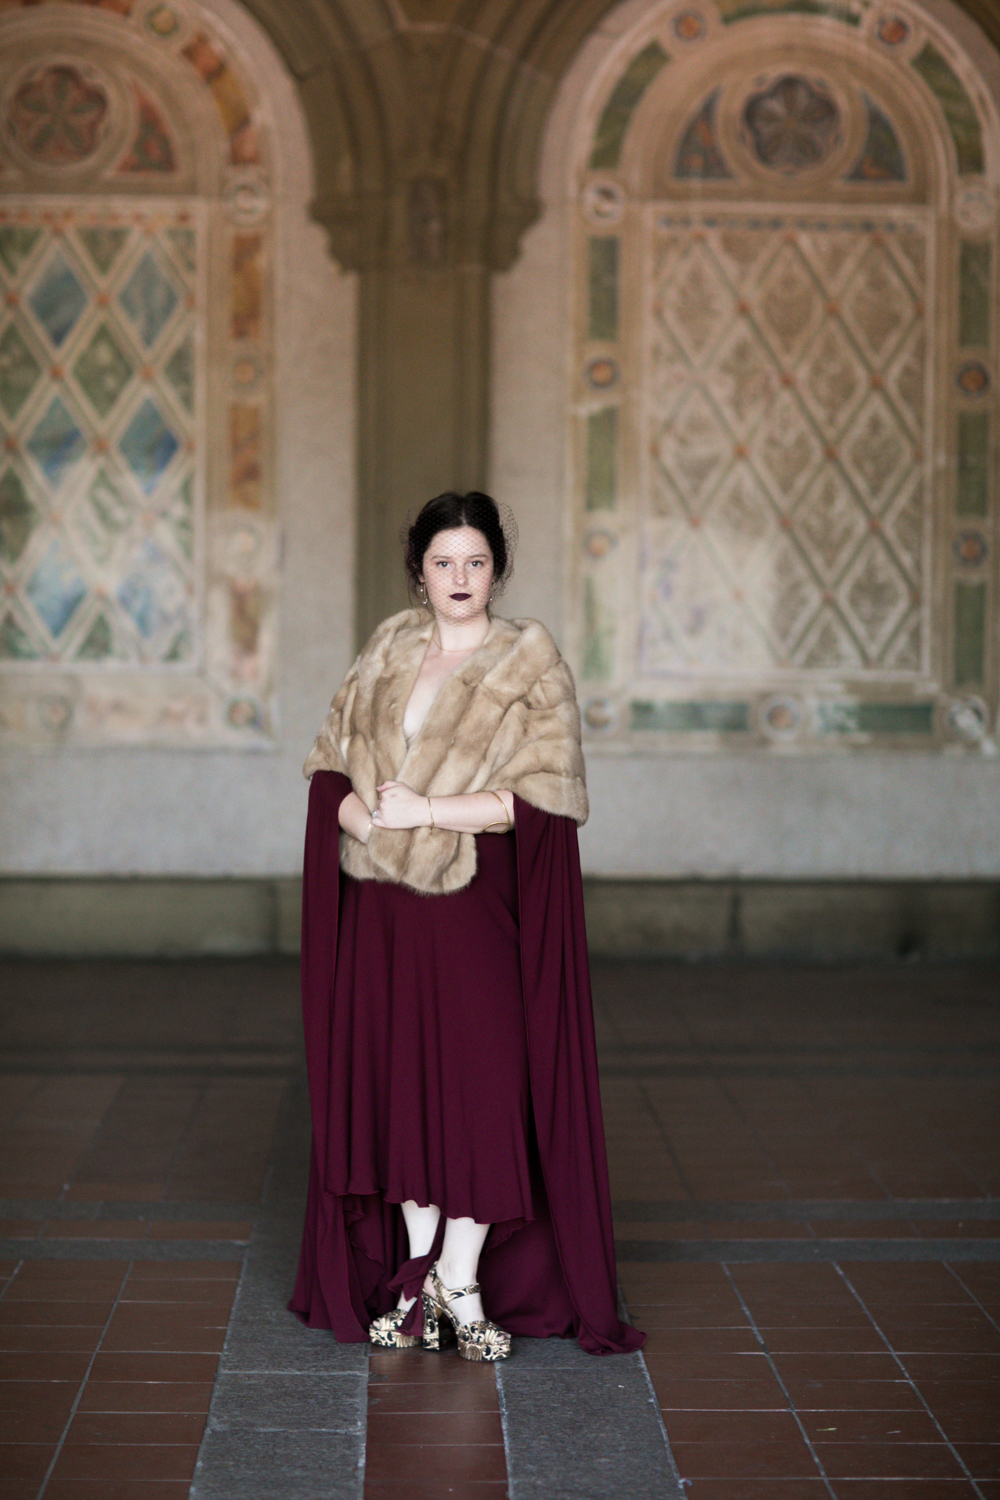 Portrait of the bride in a caped burgundy dress and an antique fur.